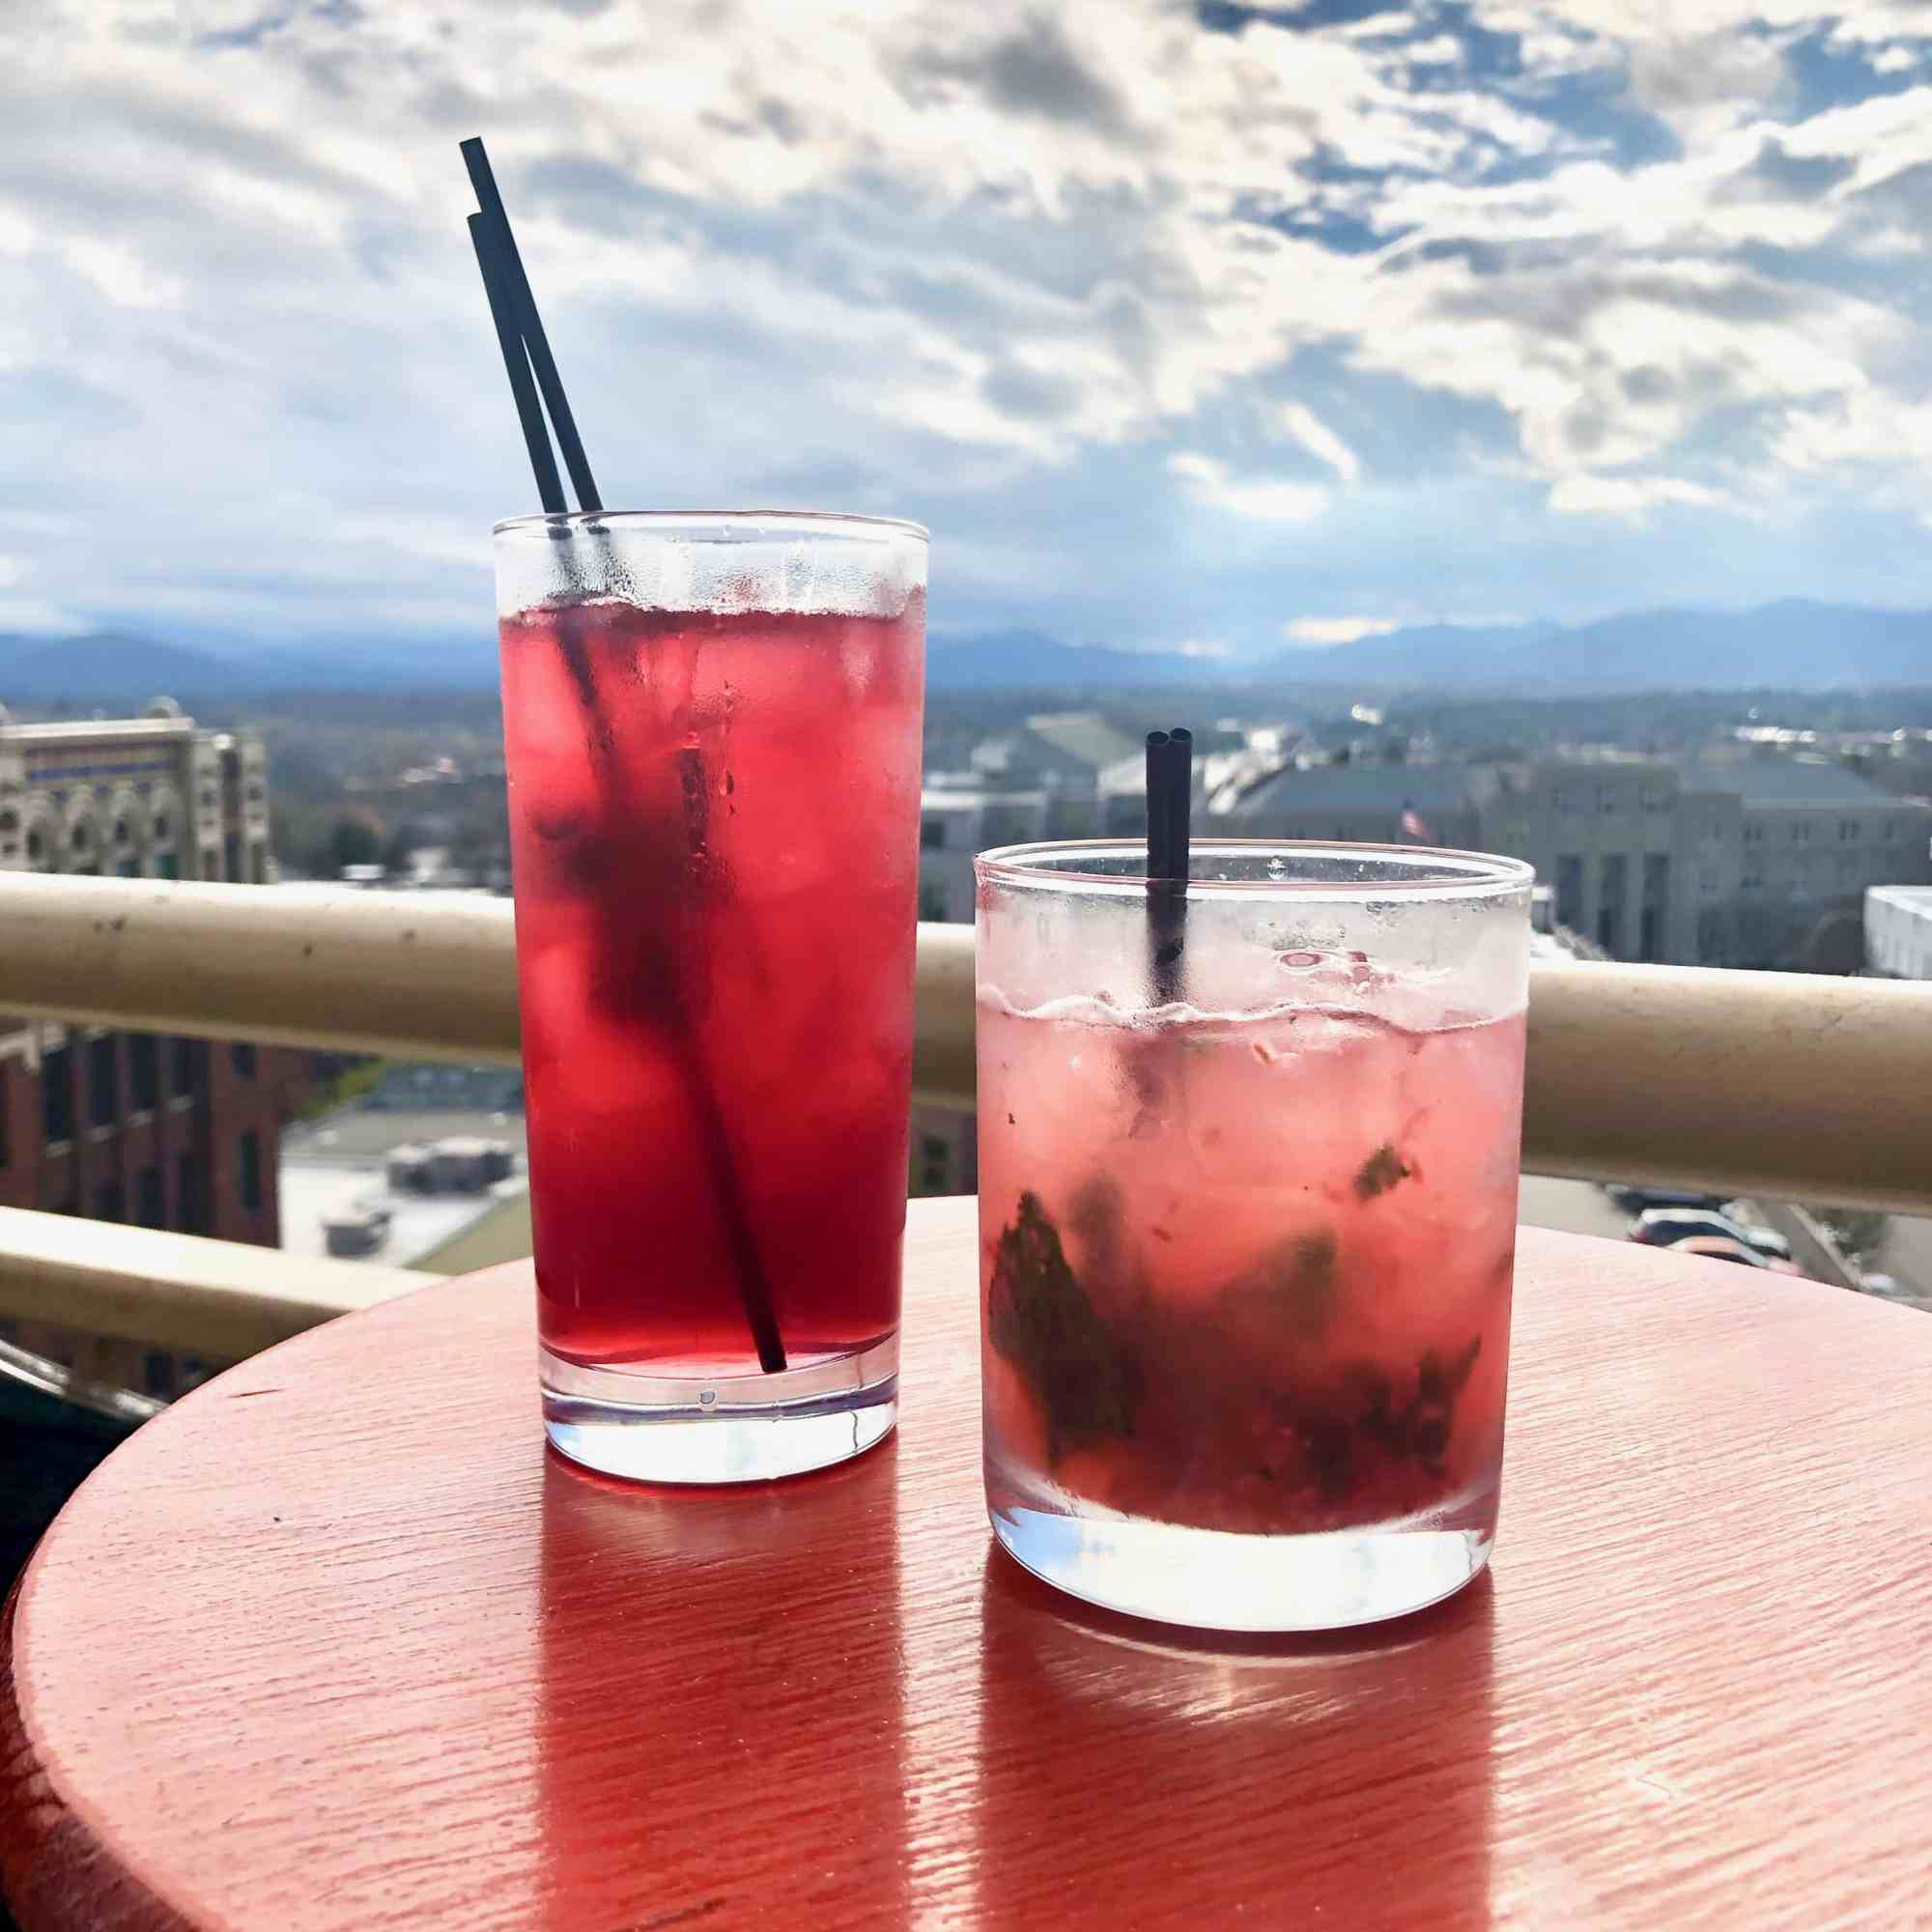 12 rooftop views in Asheville with drinks on a bar in Asheville NC overlooking mountains